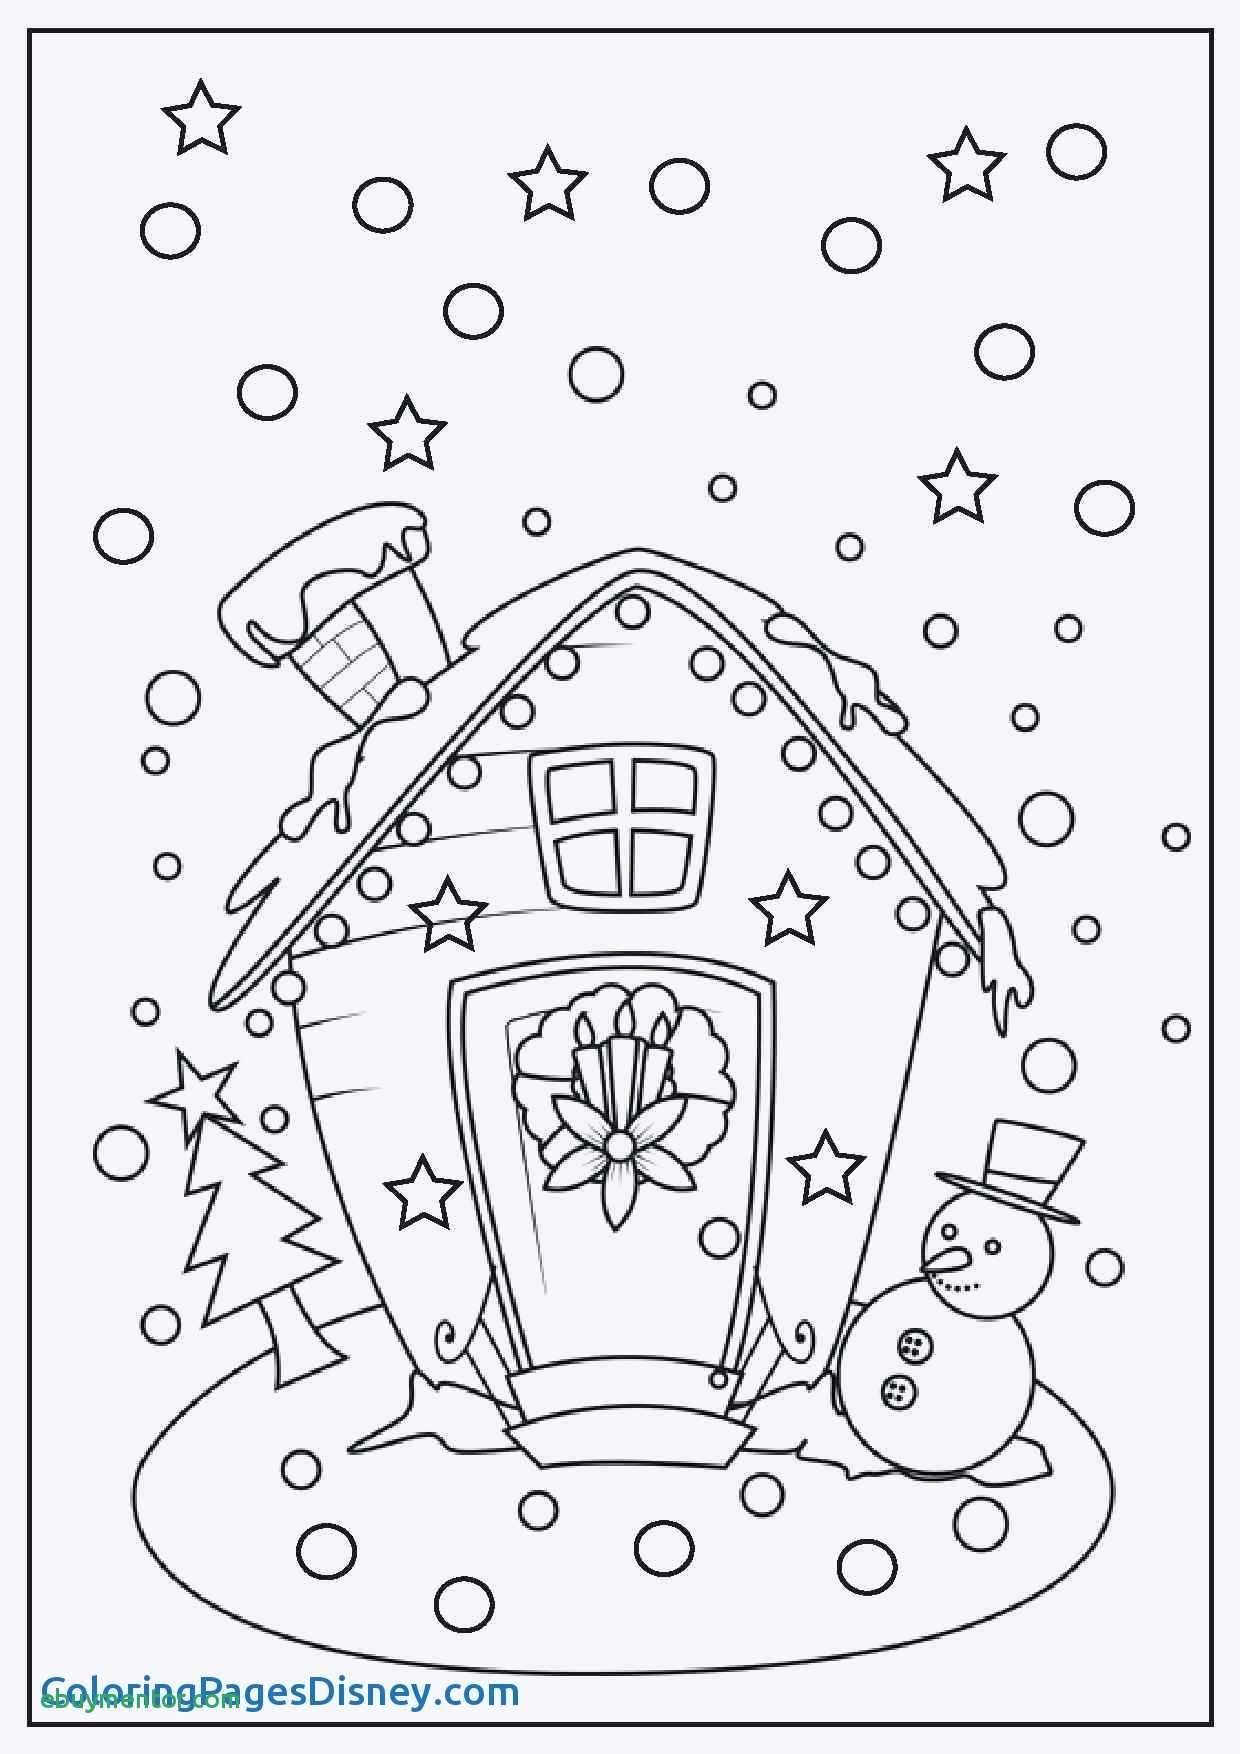 Merry Christmas Colouring Pages Printable With Prints For Kids